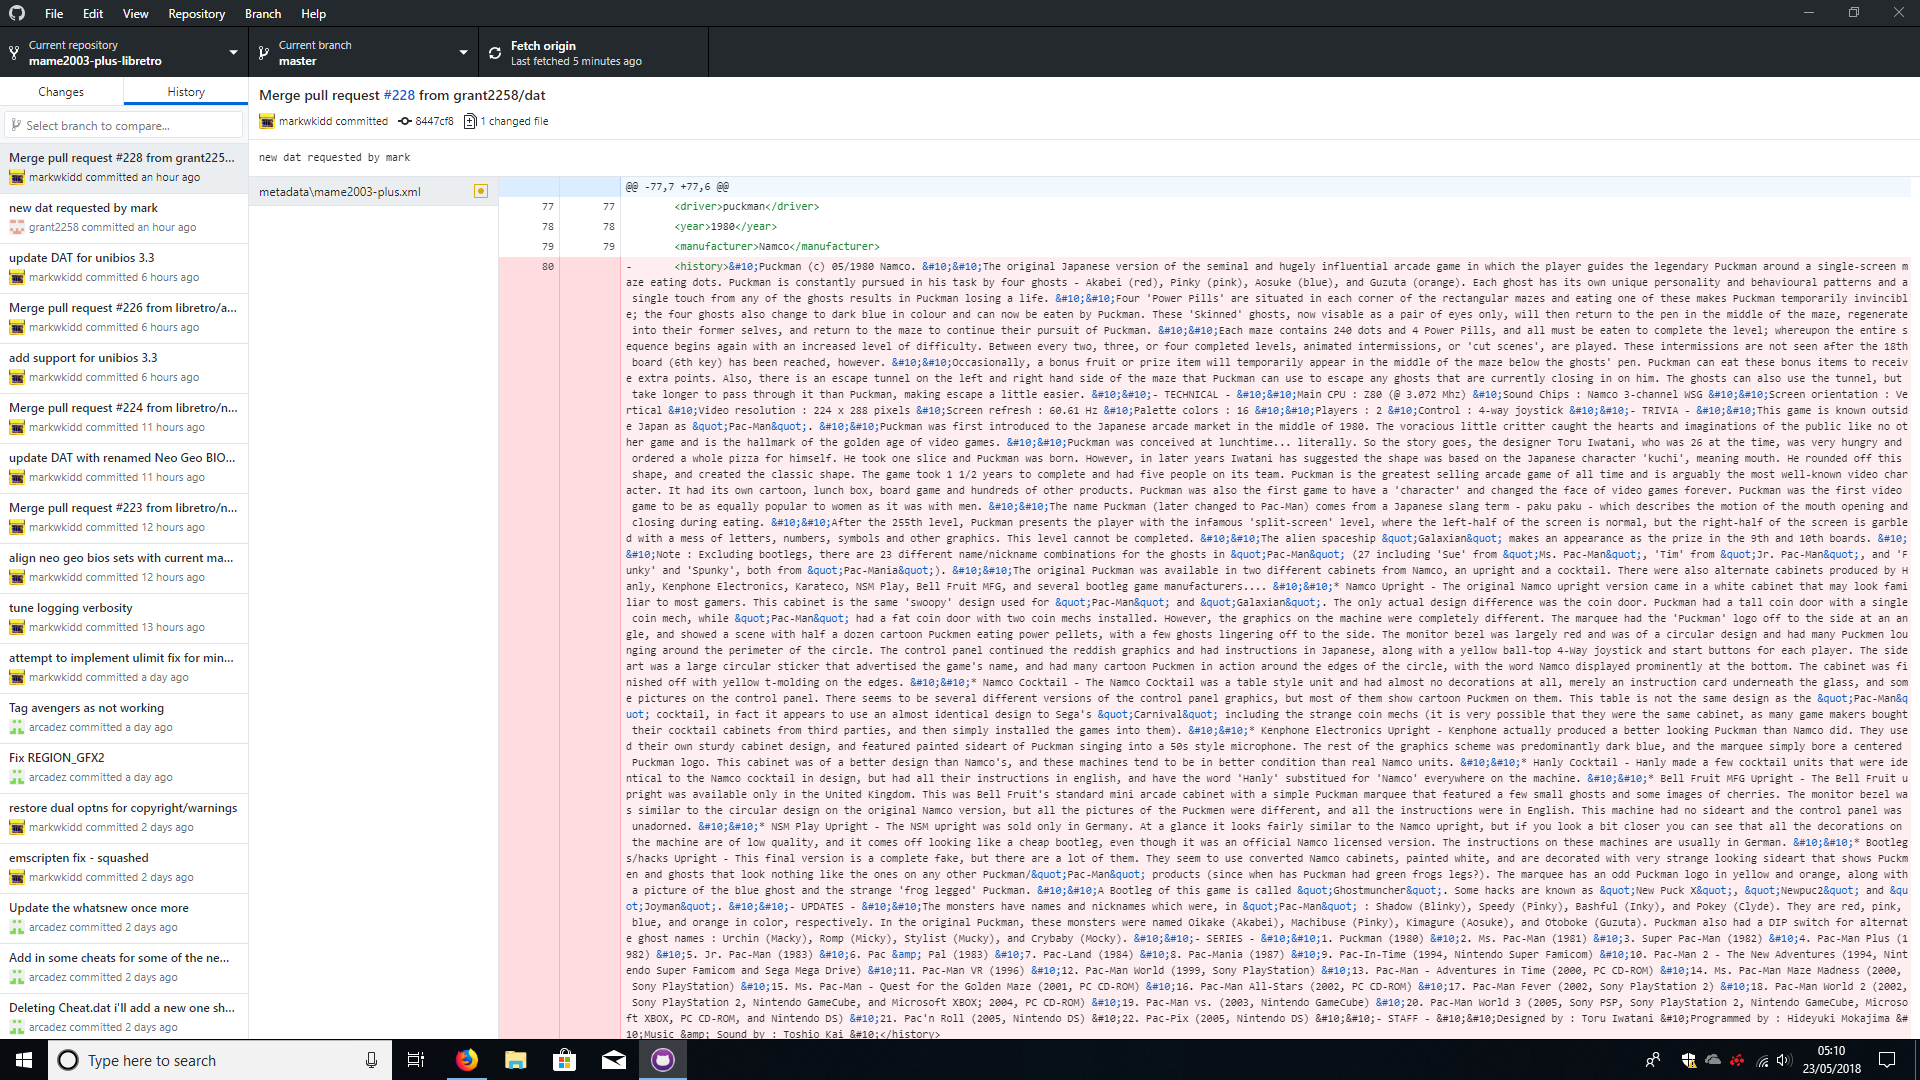 DAT generator produces inconsistent results in Windows x64